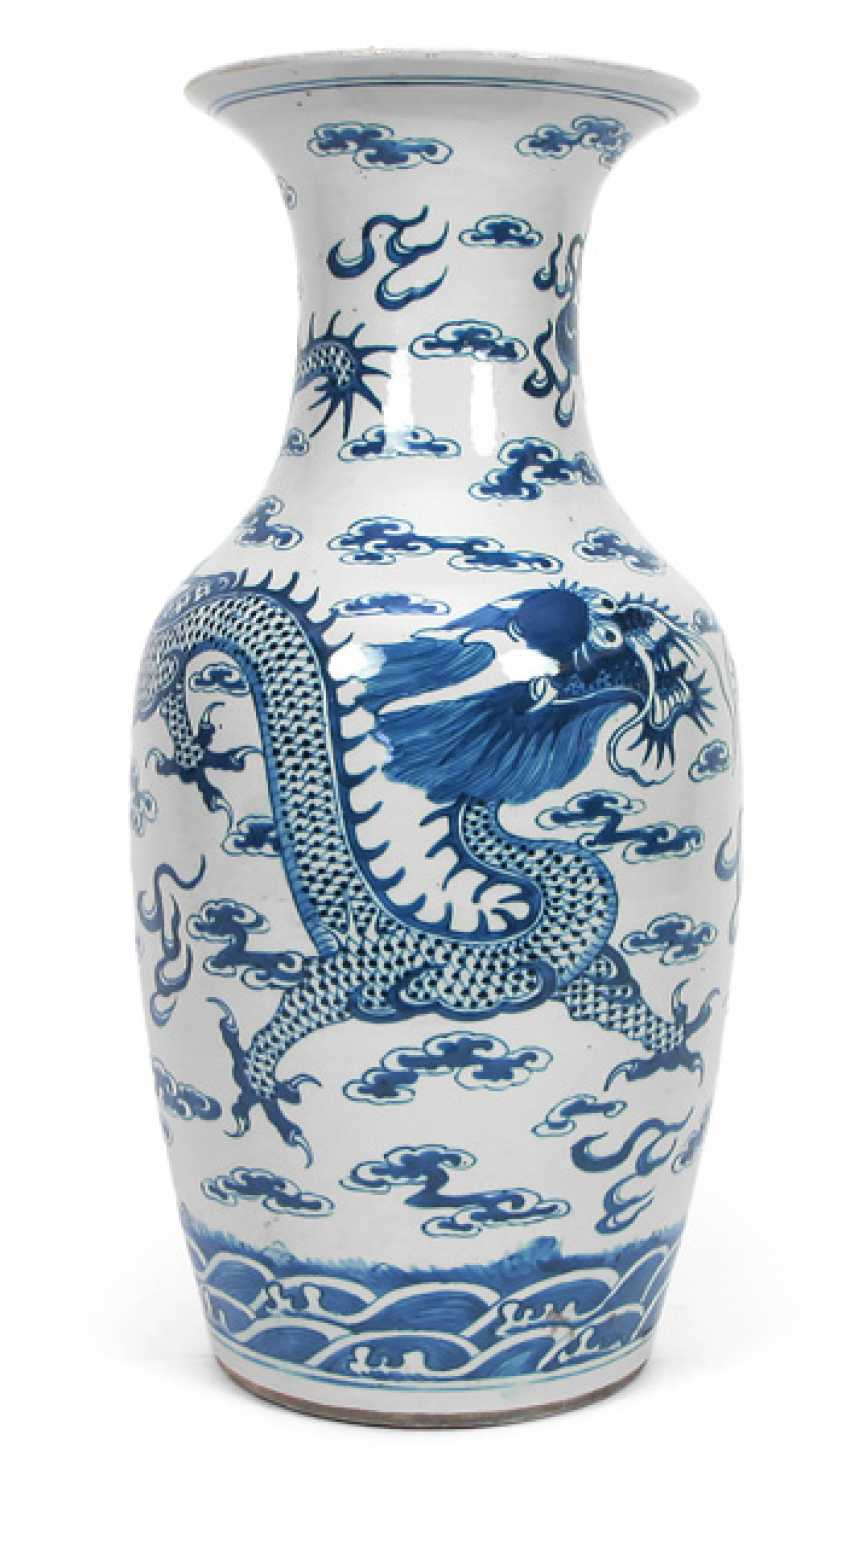 Under glaze blue Vase made of porcelain with decor of a dragon between clouds - photo 1